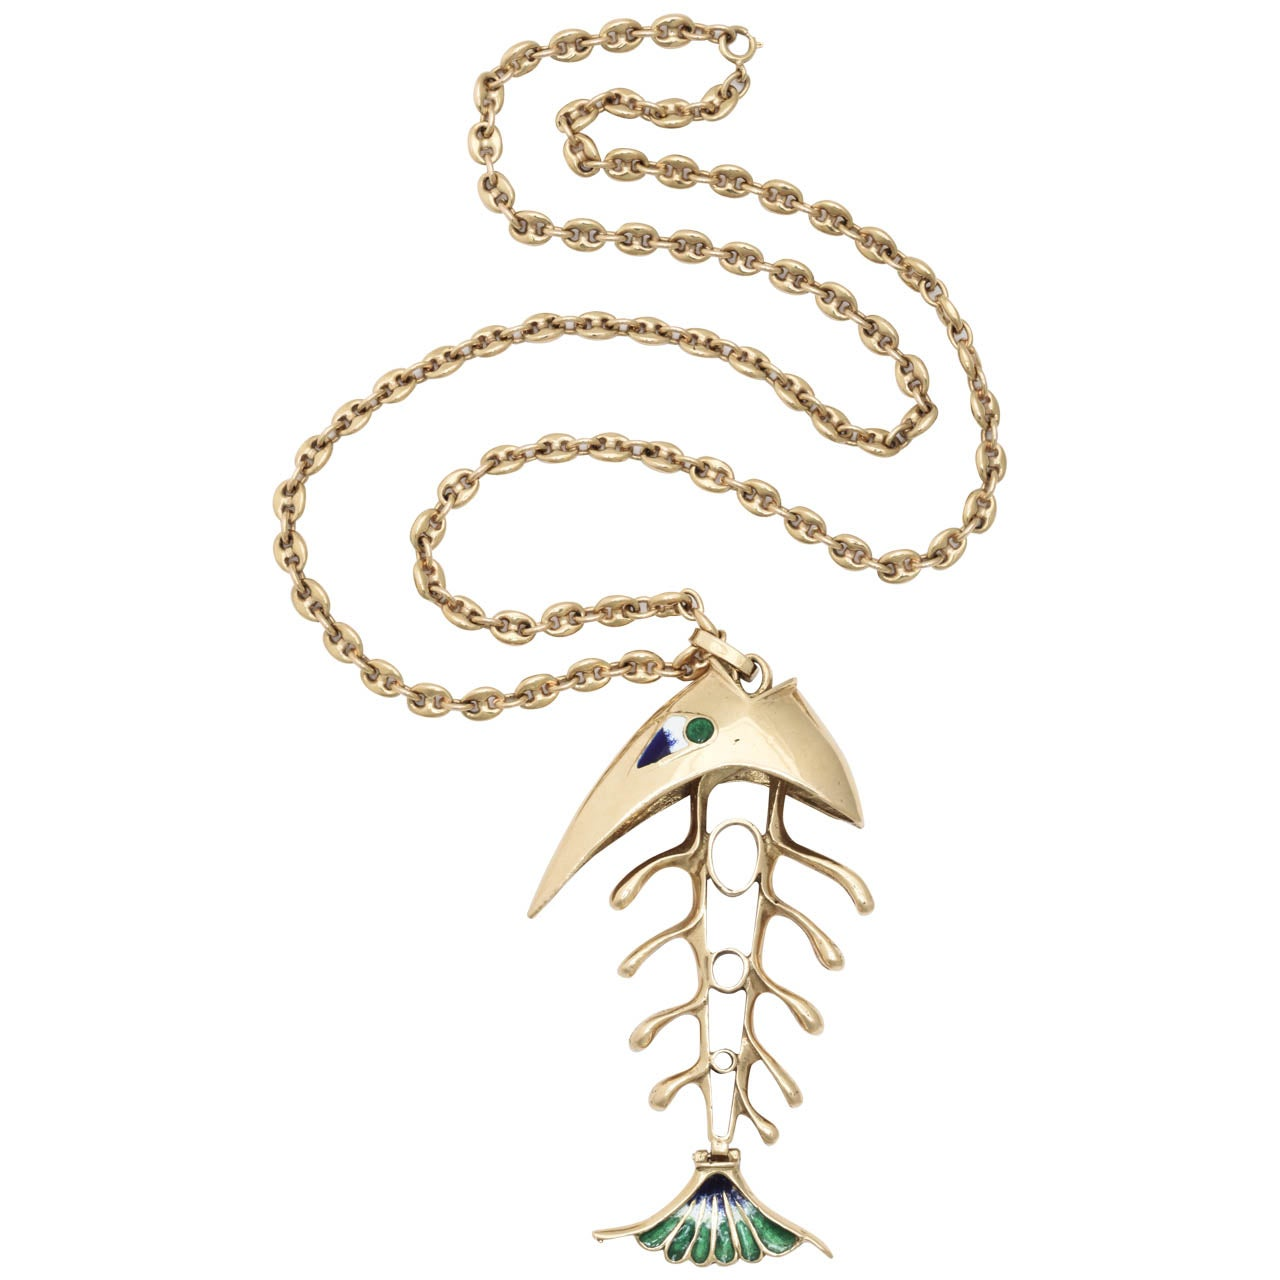 Enamel gold fish bone pendant chain necklace at 1stdibs for Gold fish pendant